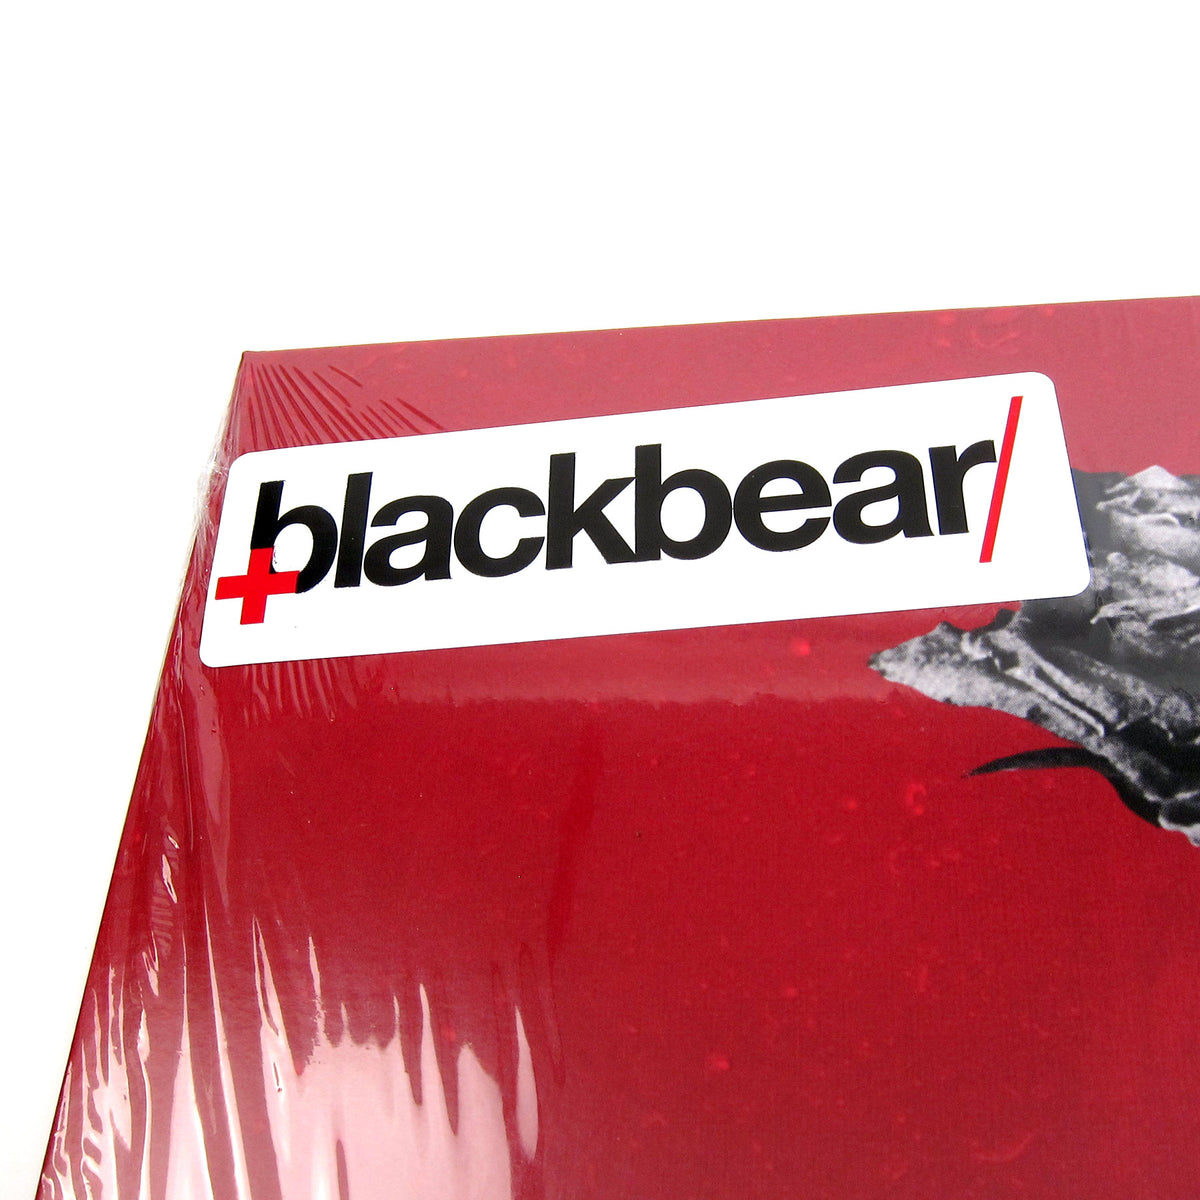 blackbear: Deadroses Vinyl LP